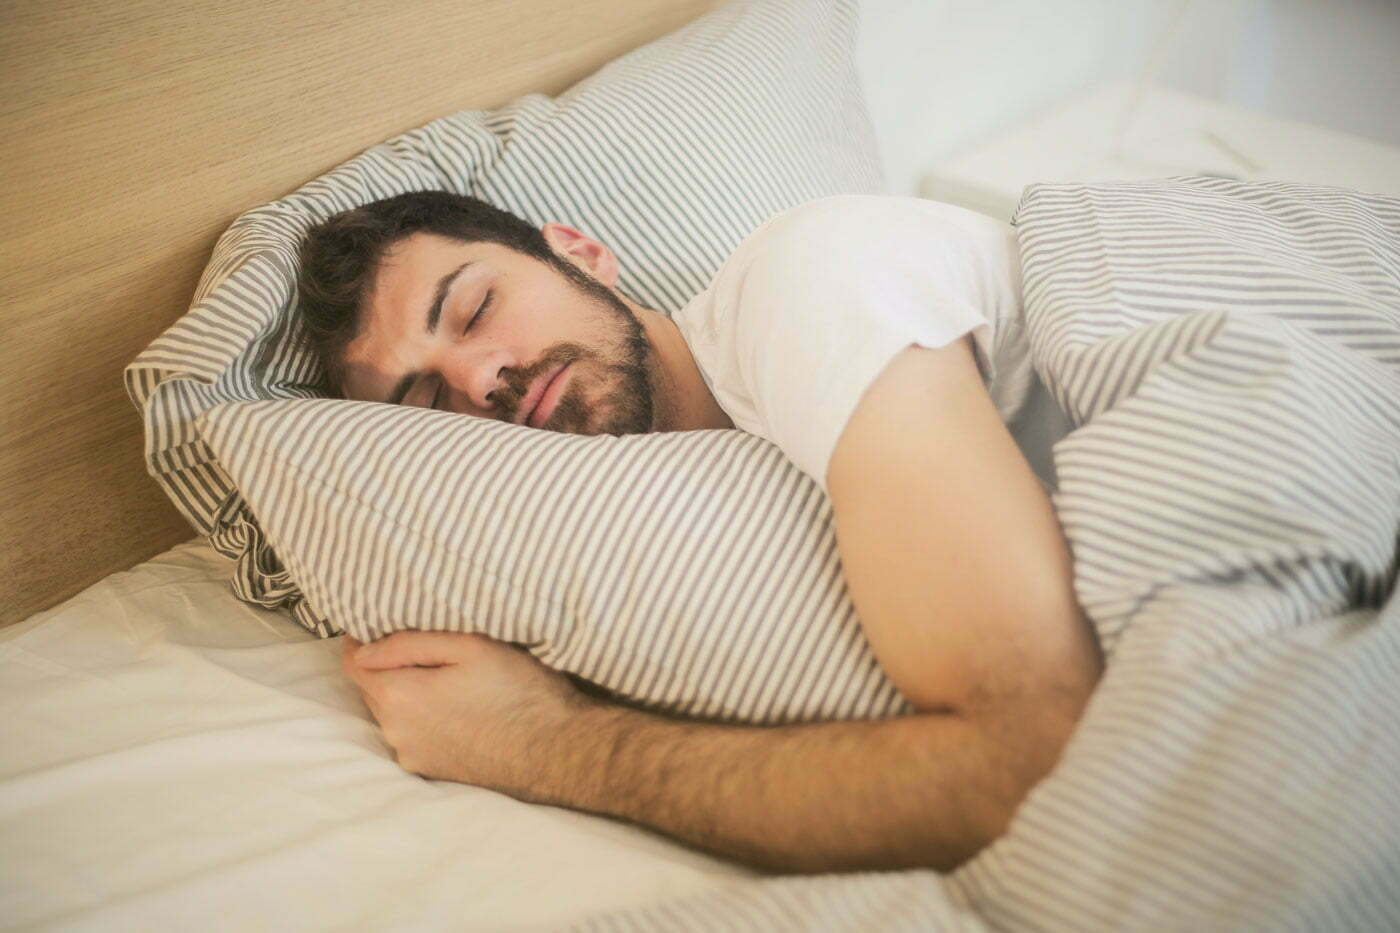 a person in a white shirt sleeping in bed